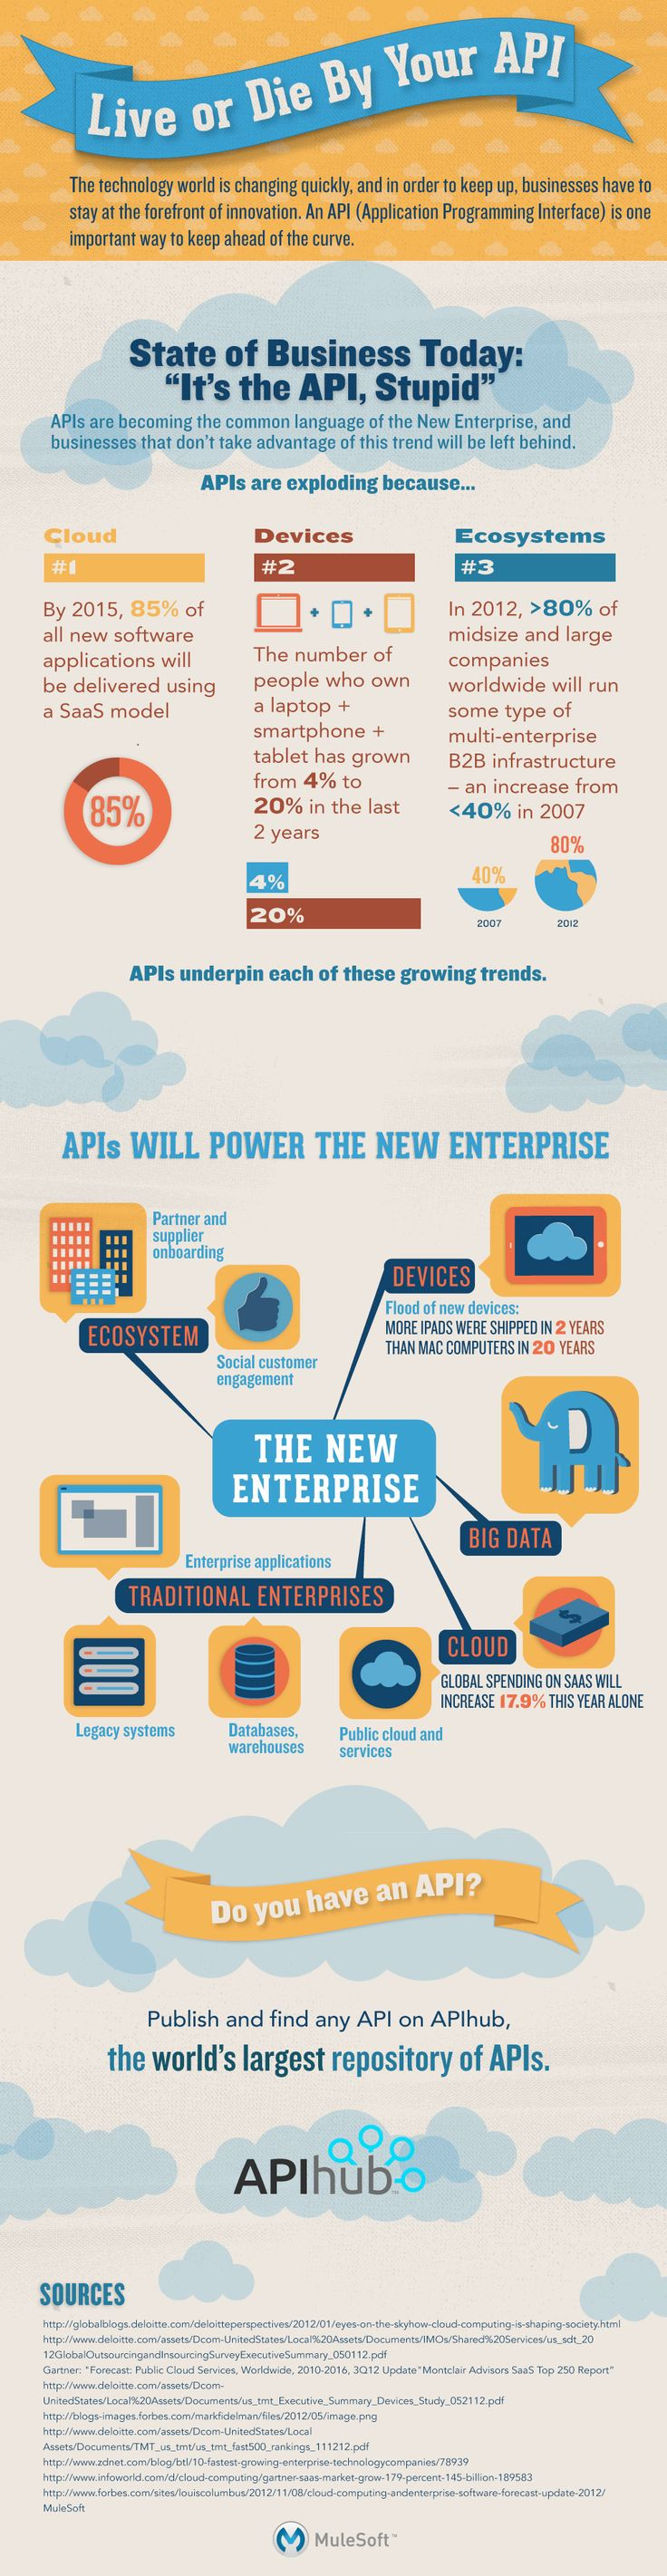 CLOUD: 85% of applications these days will be provided through some sort of SaaS model | MuleSoft